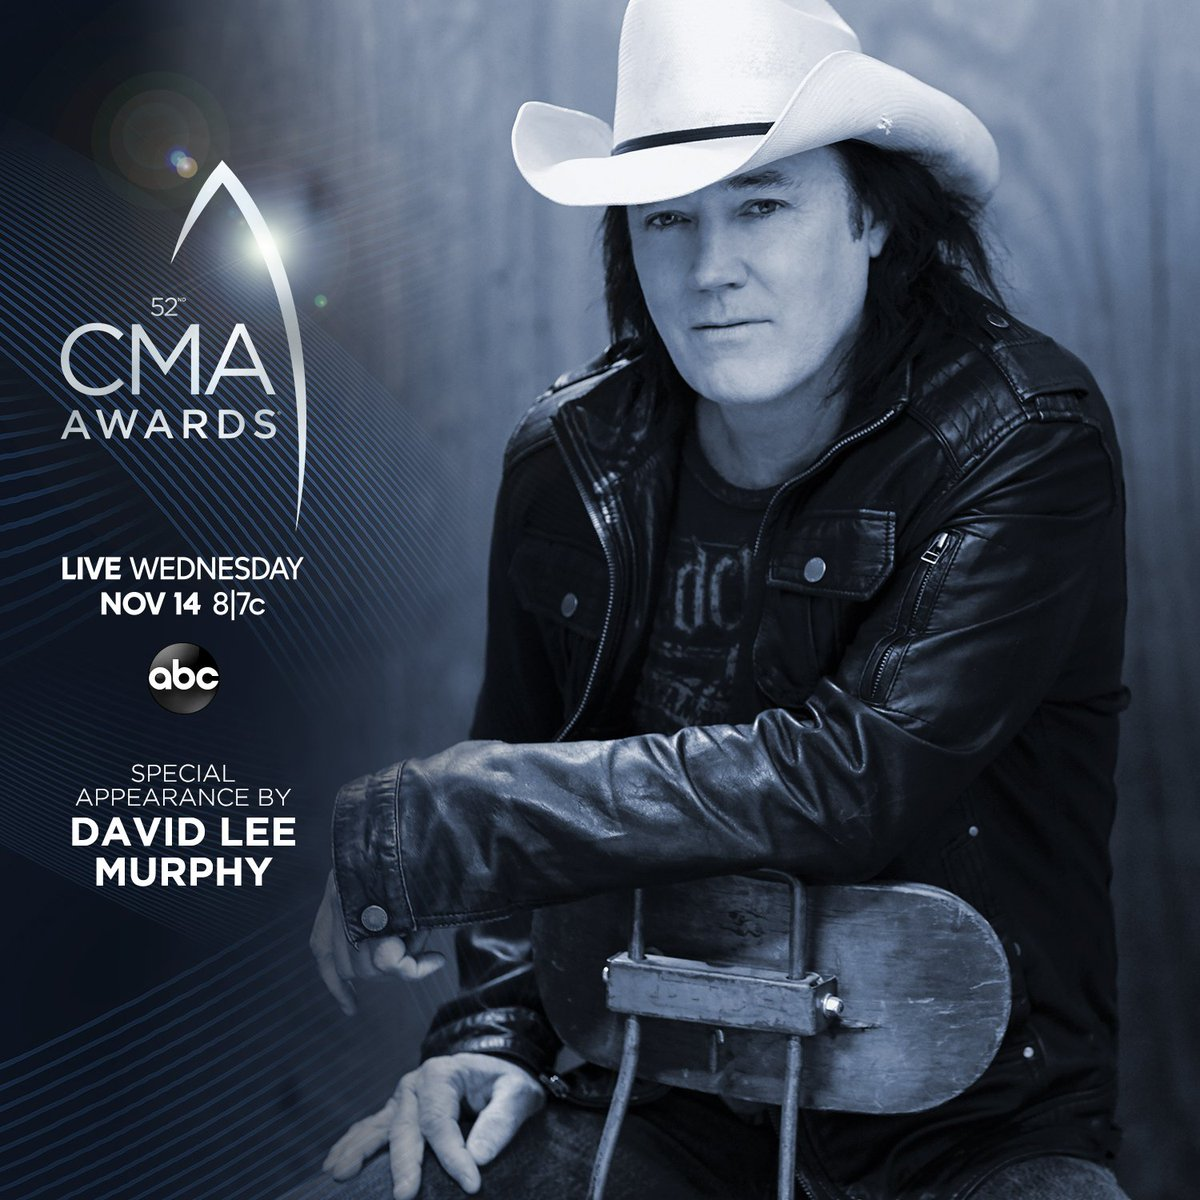 .@DavidLeeMurphy has been added to the #CMAawards lineup for a special appearance! Watch this Wednesday at 8|7c on @ABCNetwork.